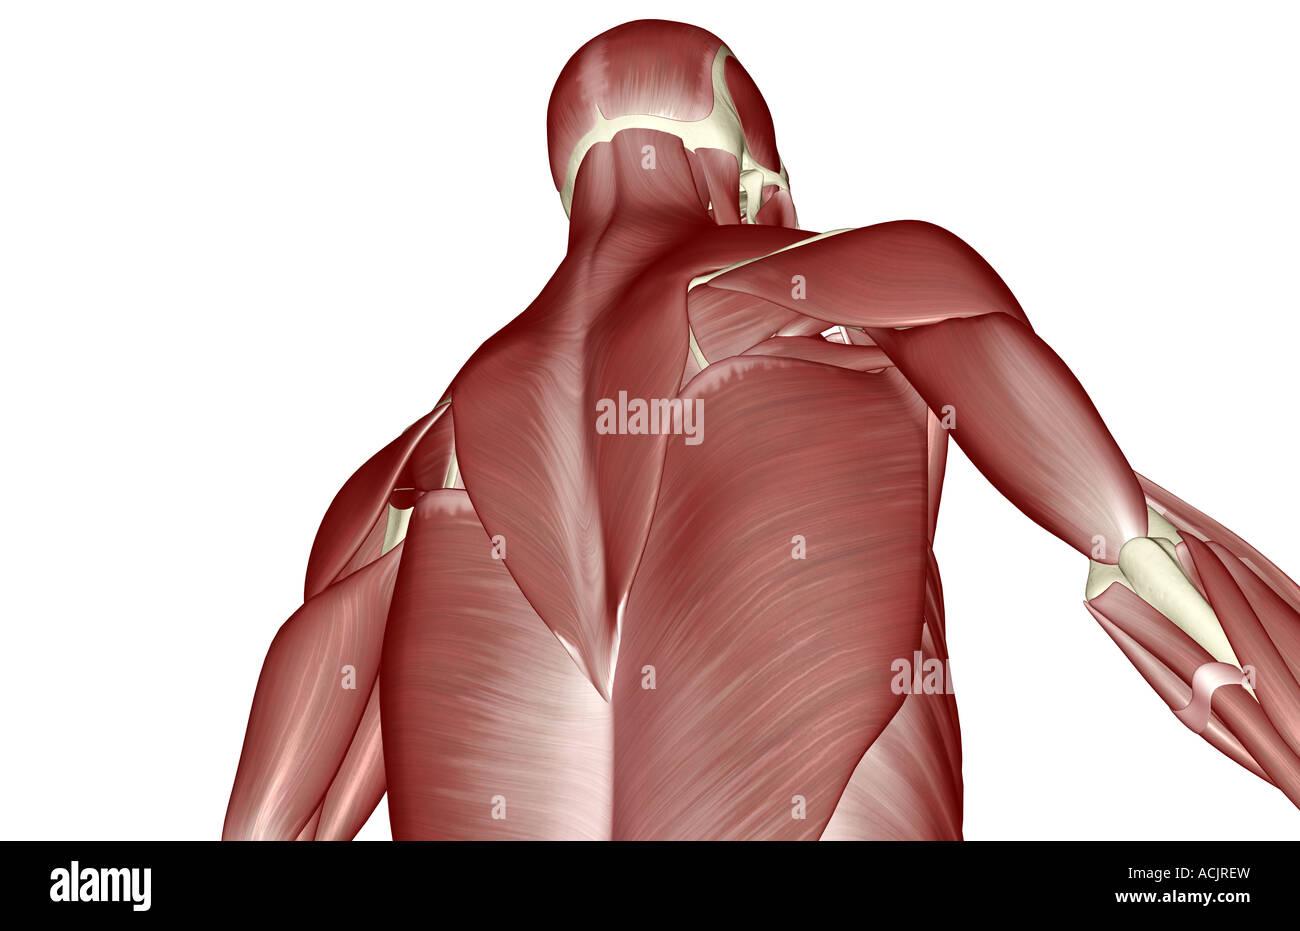 The muscles of the upper body Stock Photo: 13172832 - Alamy